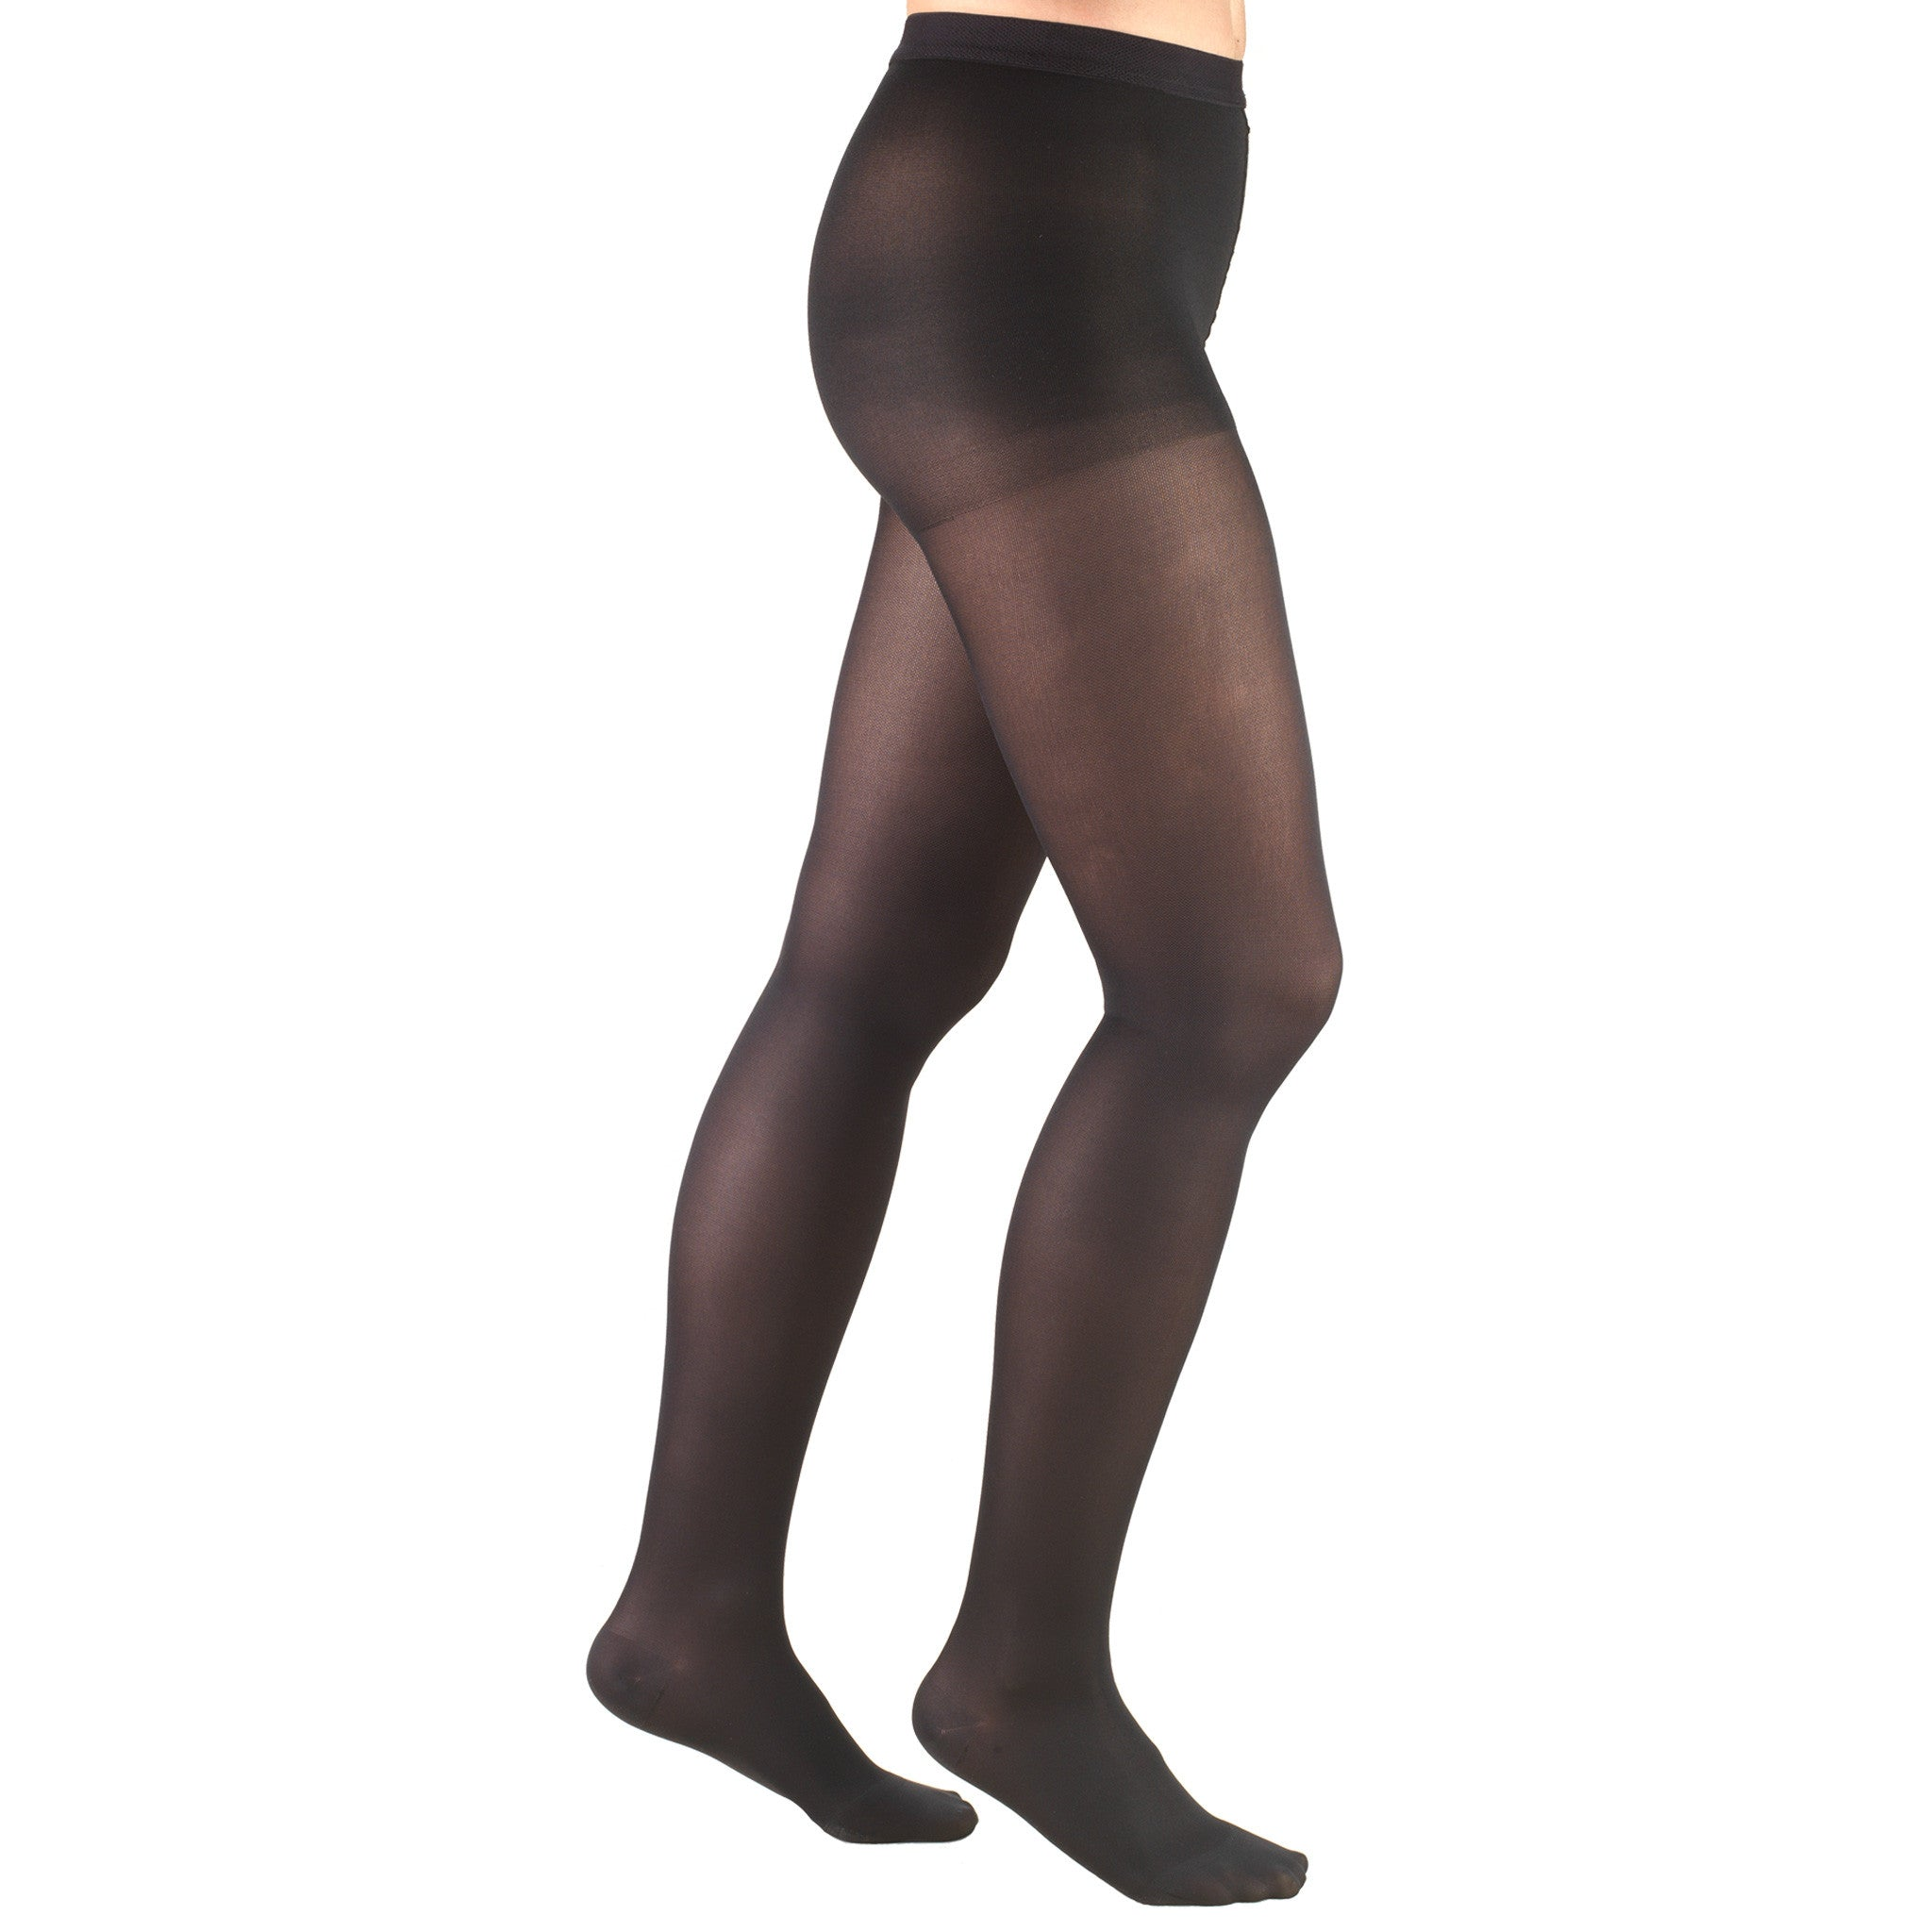 0365 Ladies' Black Opaque Pantyhose